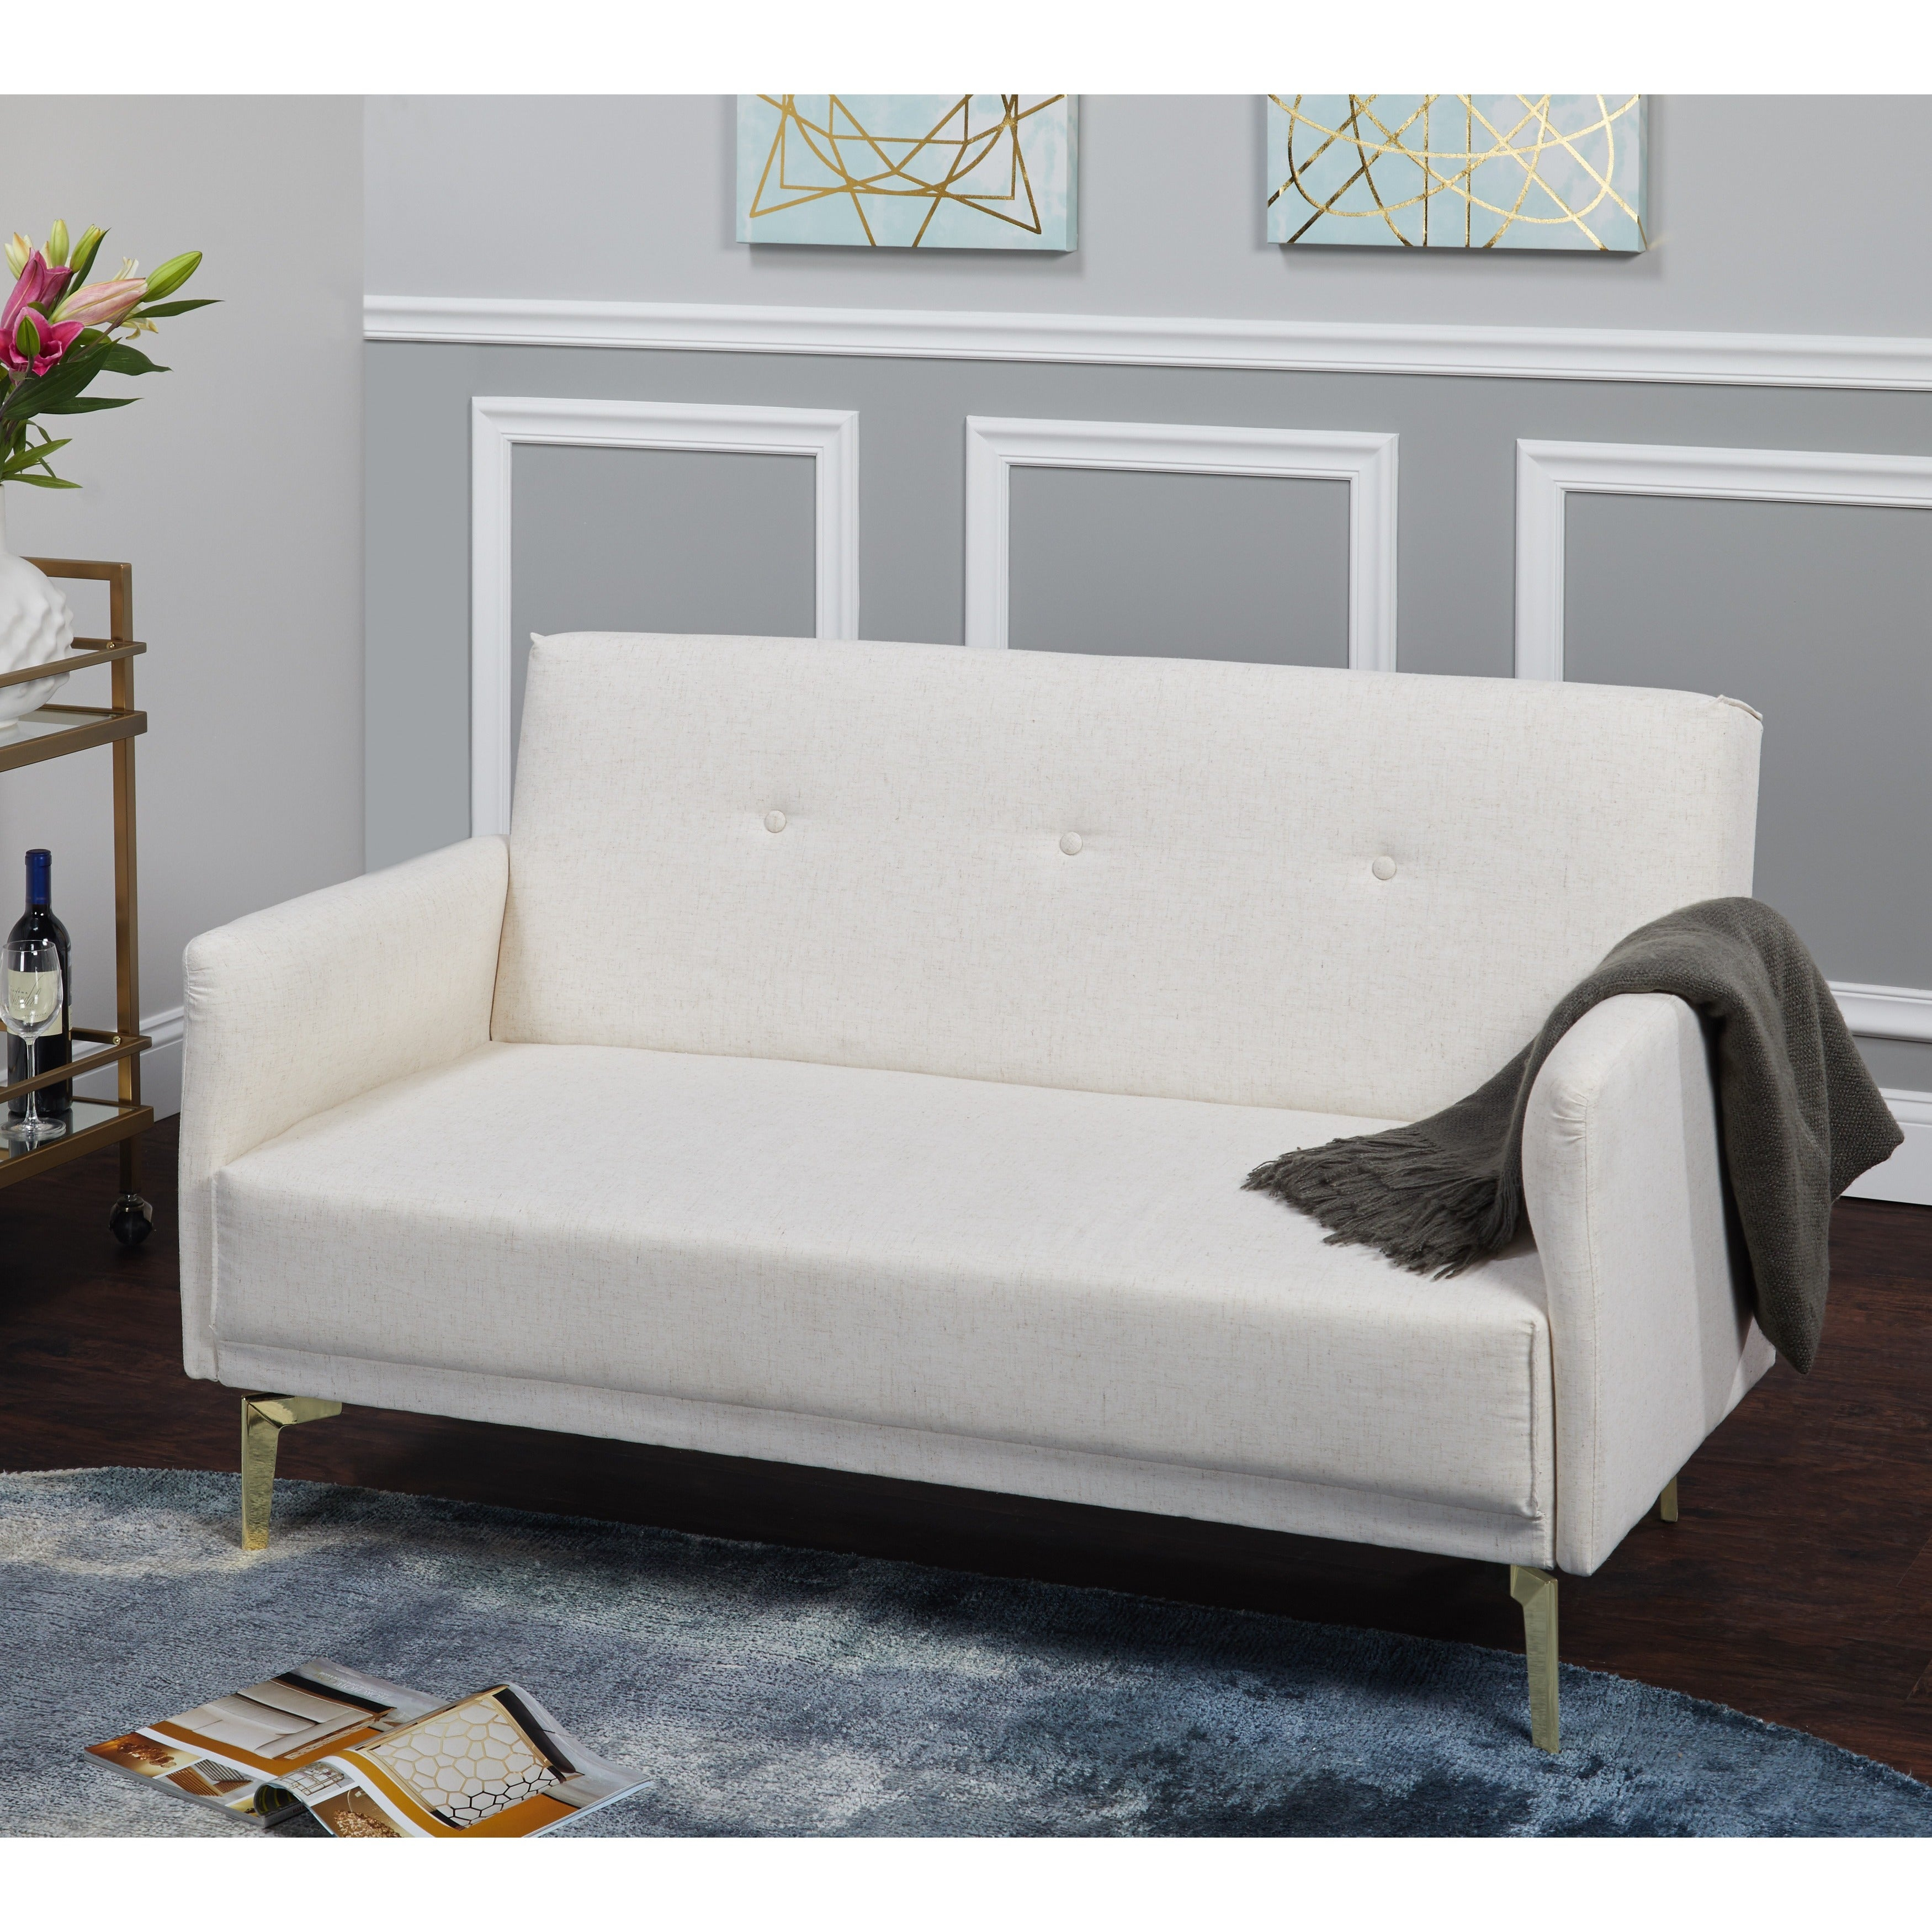 Shop Simple Living Franco Loveseat - N/A - Free Shipping Today ...